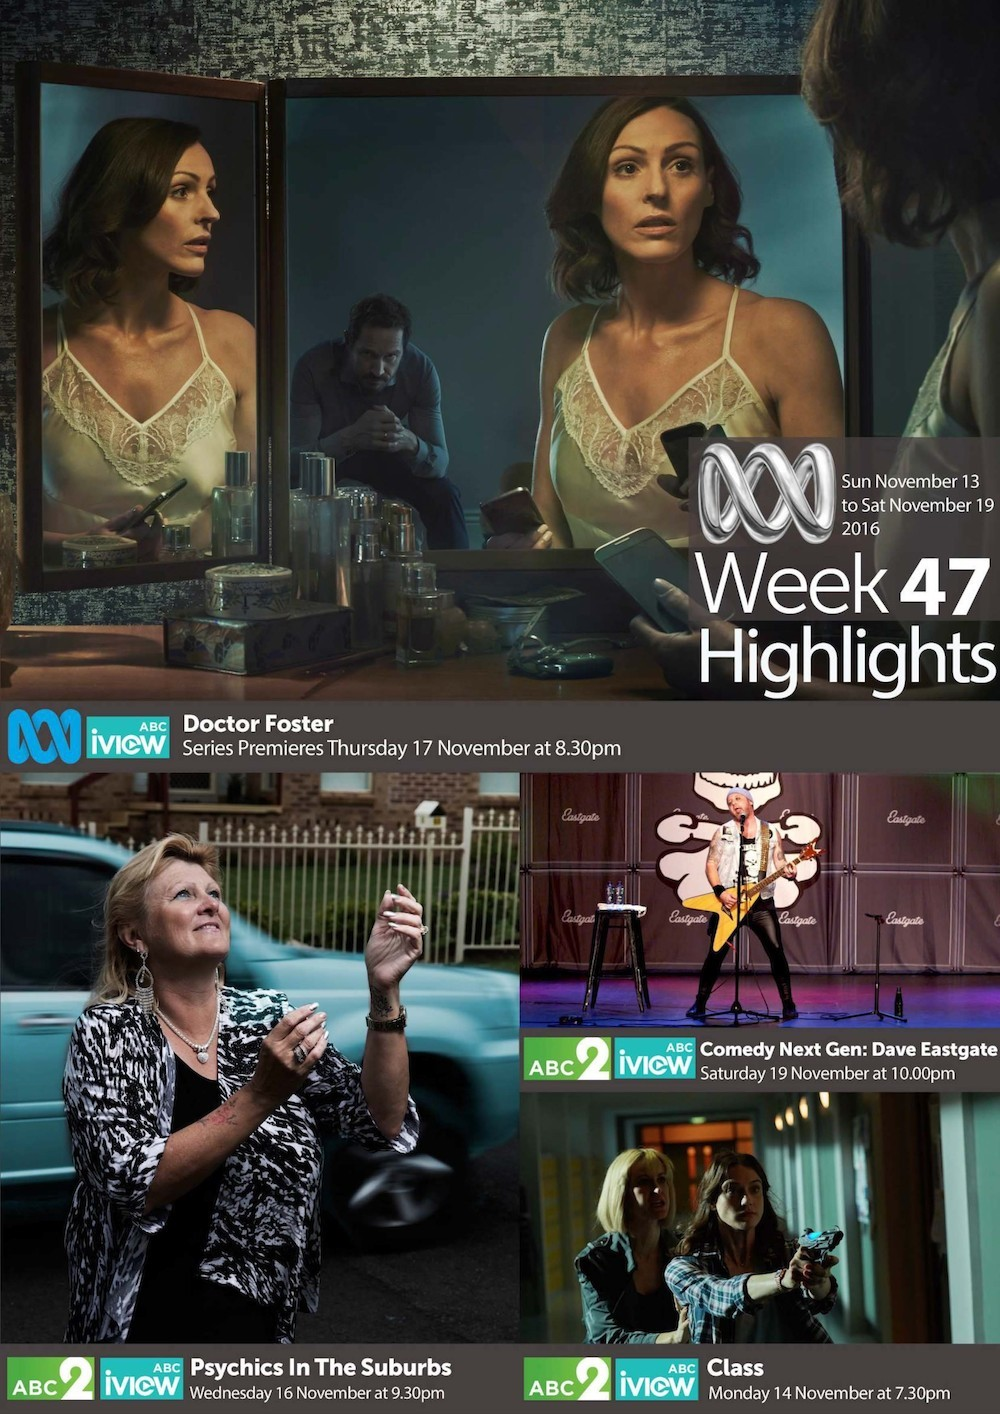 ABC Weekly Highlights - Week 47